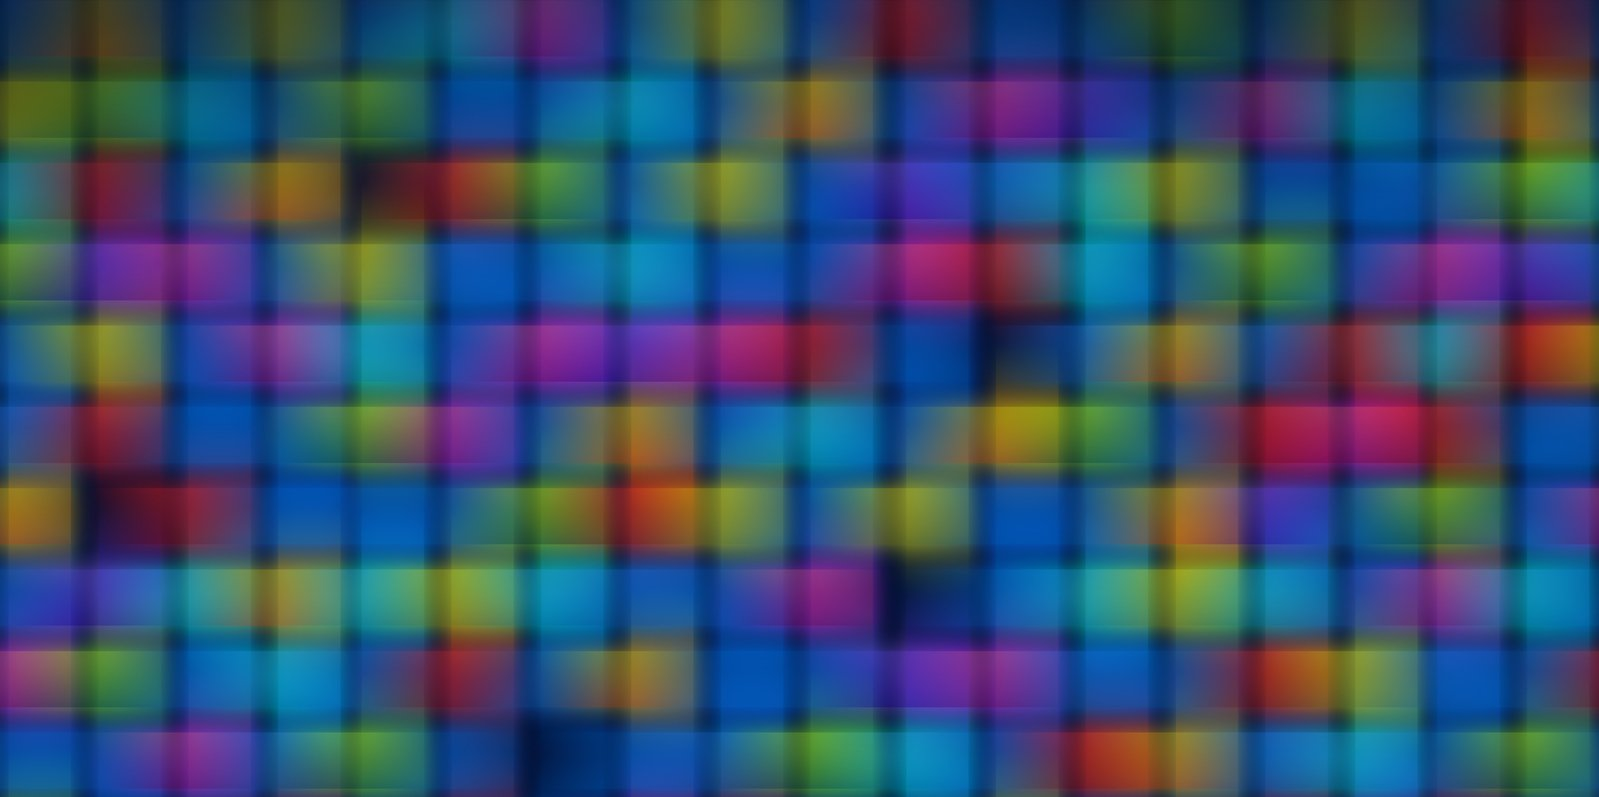 Free Colorful tile pattern Stock Photo - FreeImages.com